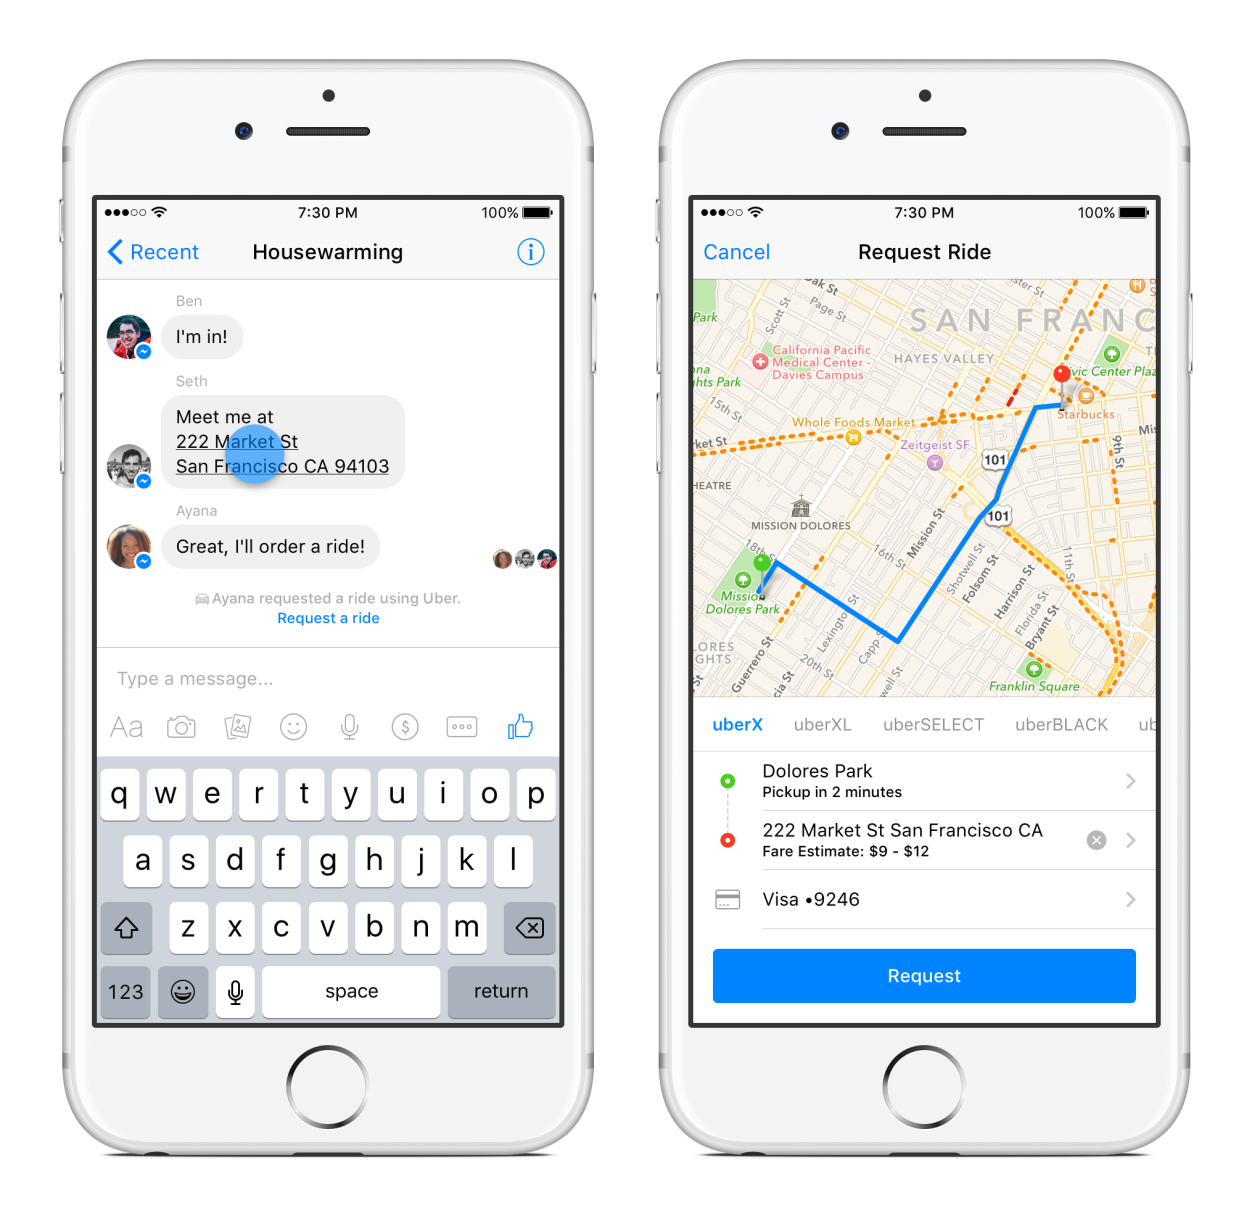 Facebook Messenger with new Feature: Transportation